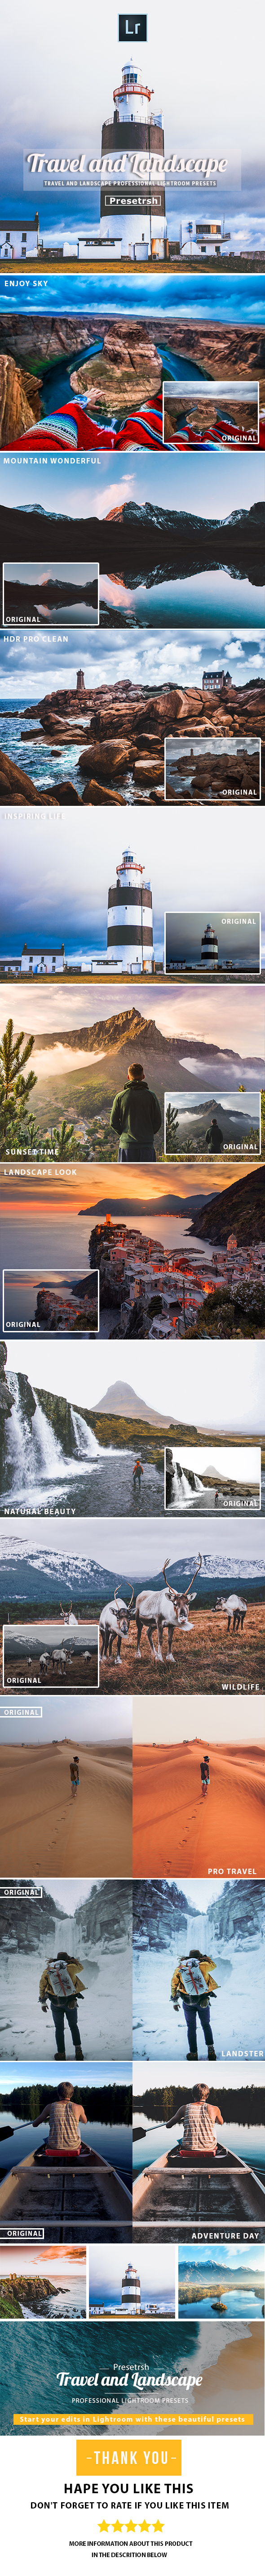 30 Travel & Landscape Presets - Lightroom Presets Add-ons